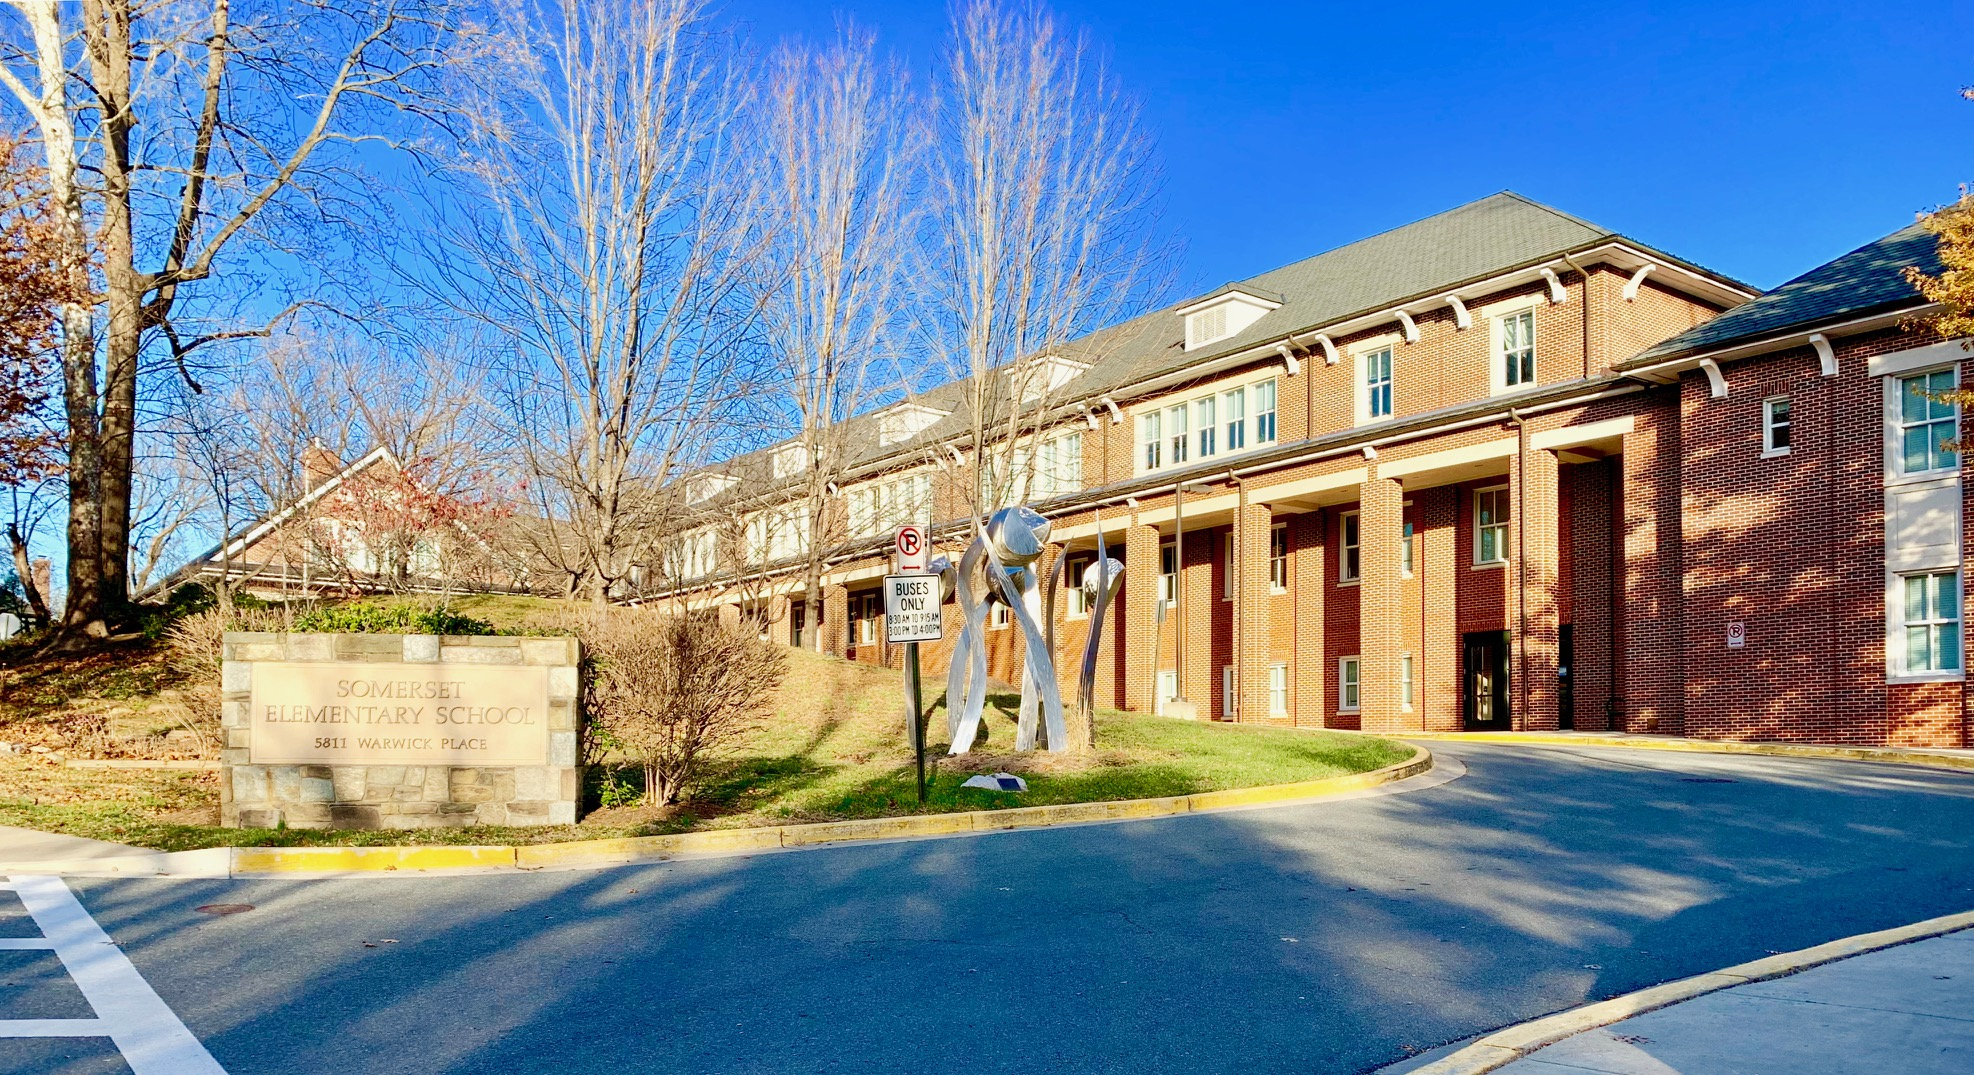 Somerset, MD Luxury Real Estate & Homes For Sale. Somerset Elementary. Artyom Shmatko Luxury Real Estate Agent